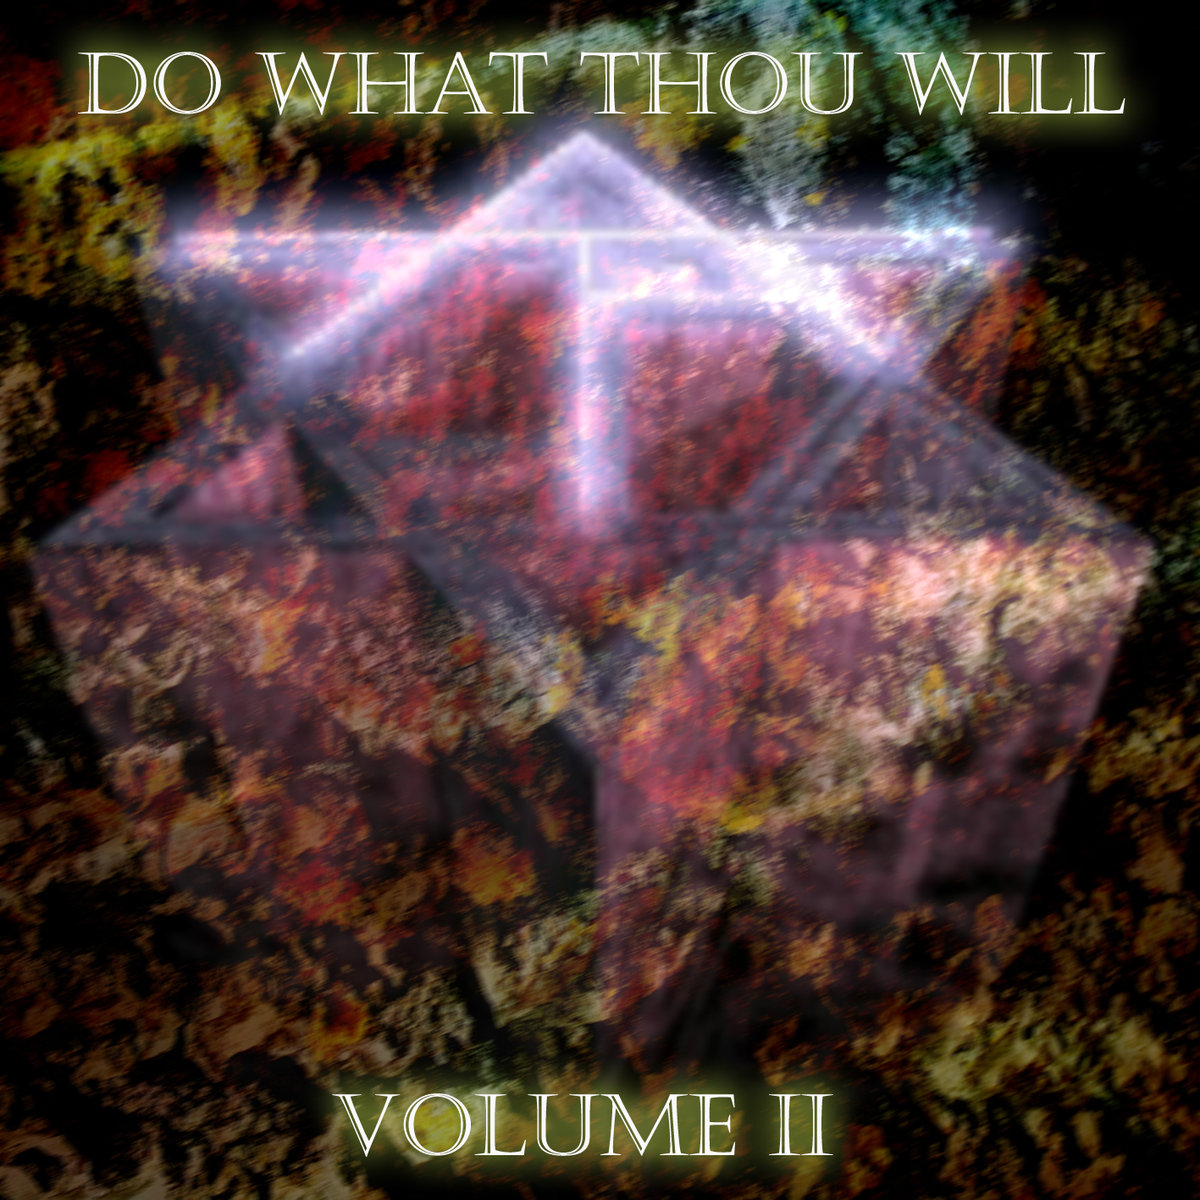 Do What Thou Will Volume II